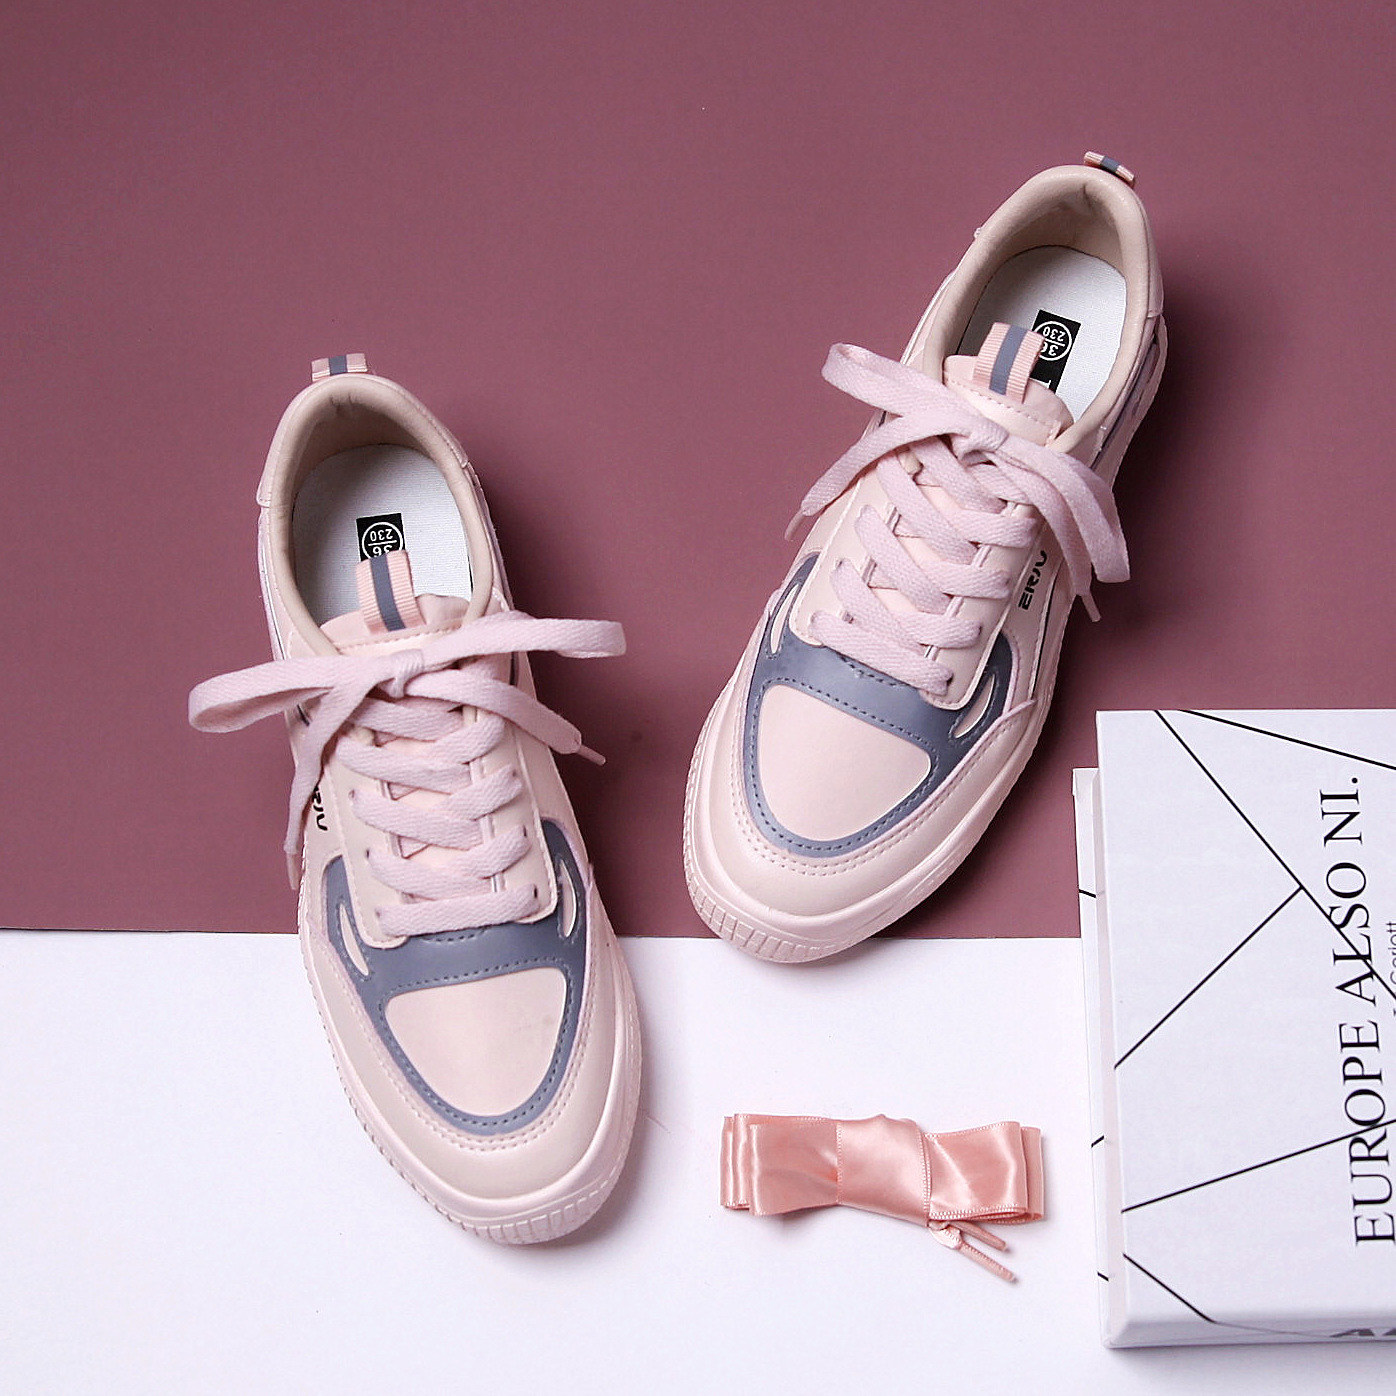 Women's Shoes Casual Sports Sneakers Breathable Comfortable Women Shoes Fashion Spring New Patchwork Leather Flat Shoes Women